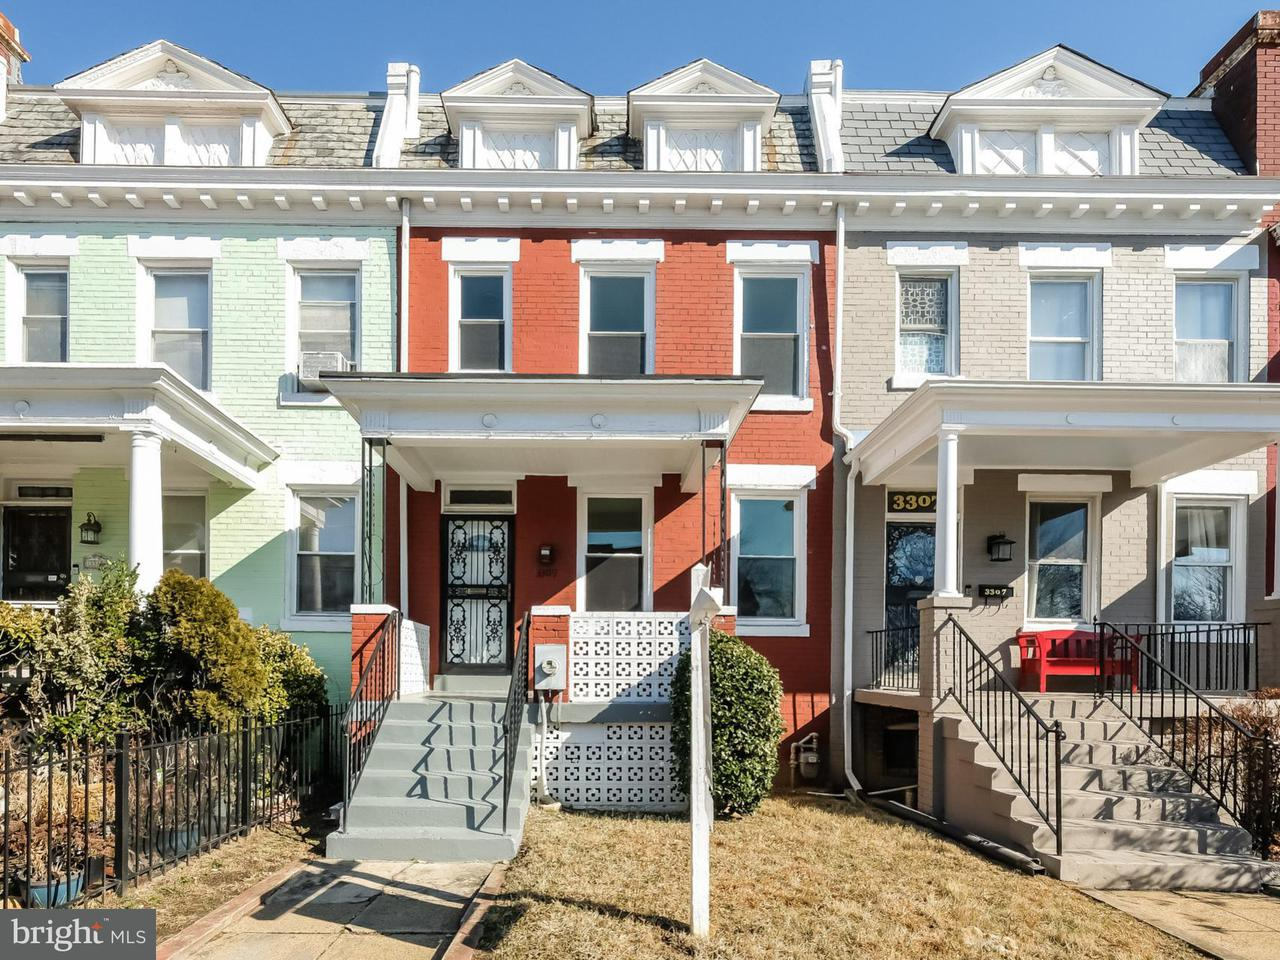 Townhouse for Sale at 3309 Sherman Ave Nw 3309 Sherman Ave Nw Washington, District Of Columbia 20010 United States